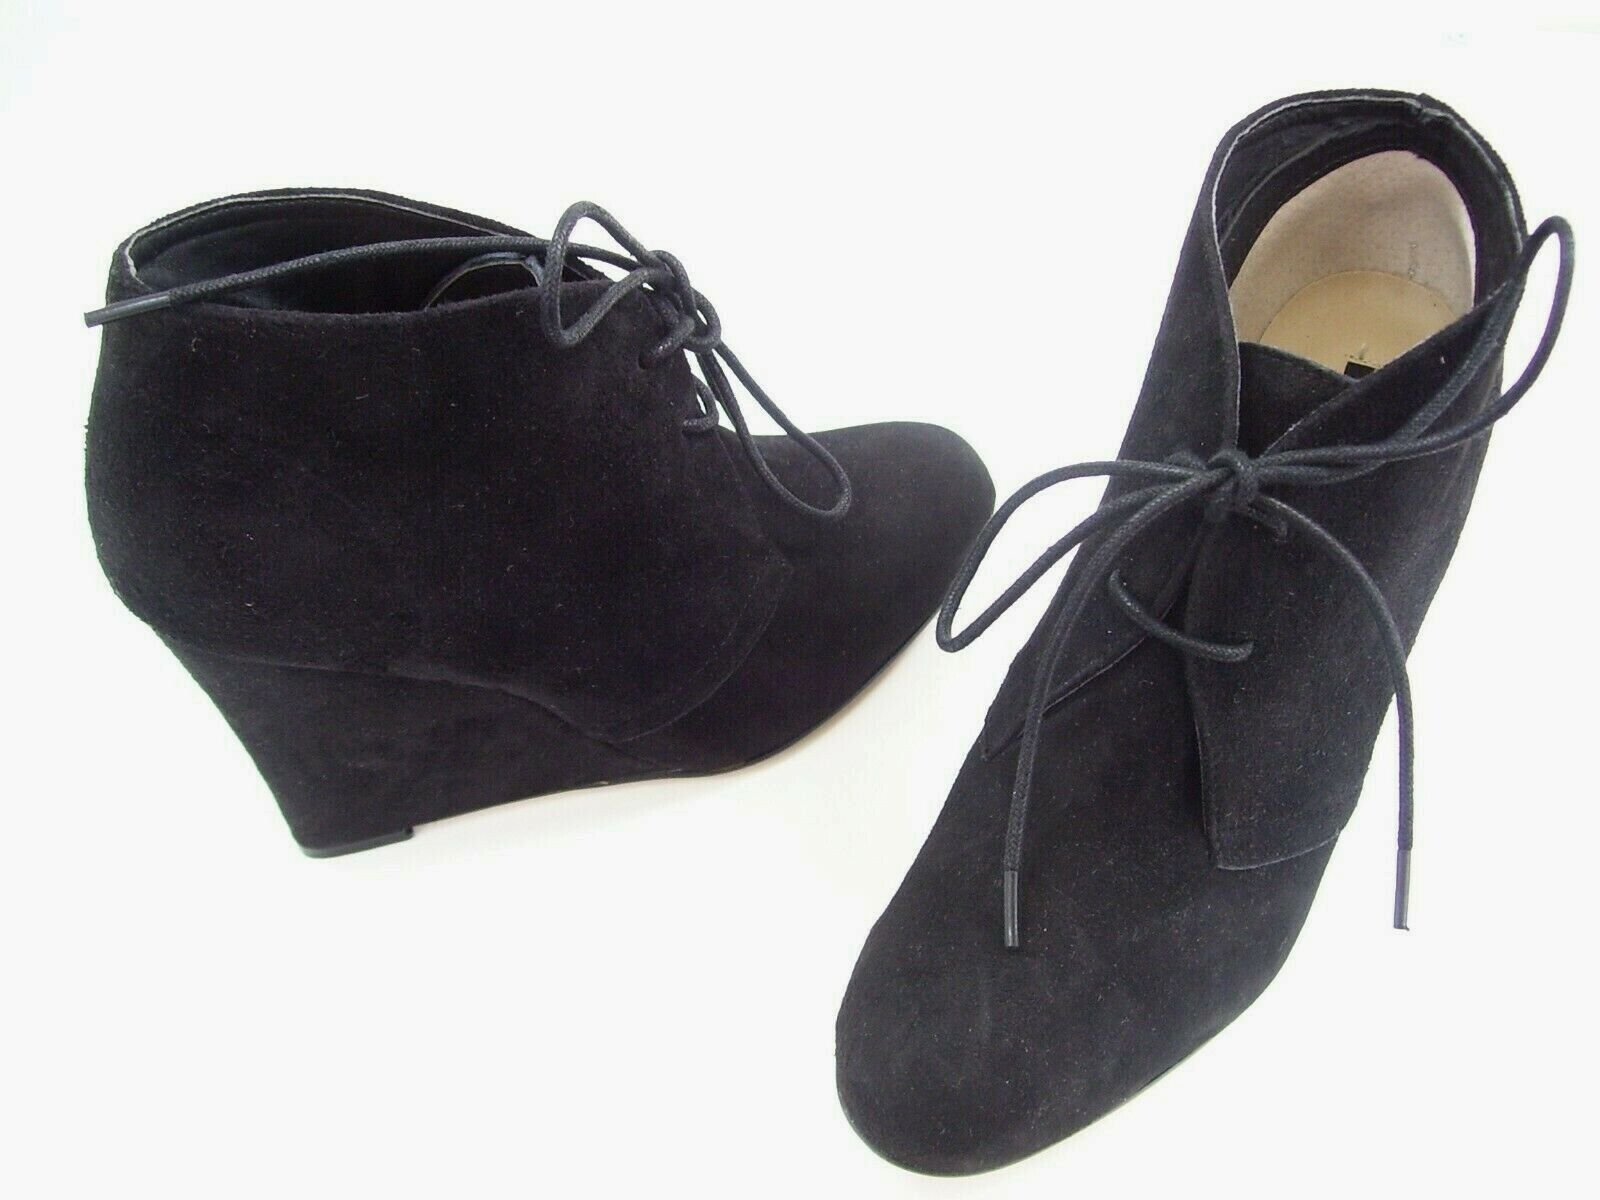 TONY BIANCO ANKLE bottes WEDGES LADIES DRESS chaussures SUEDE LEYLA noir Taille 7.5